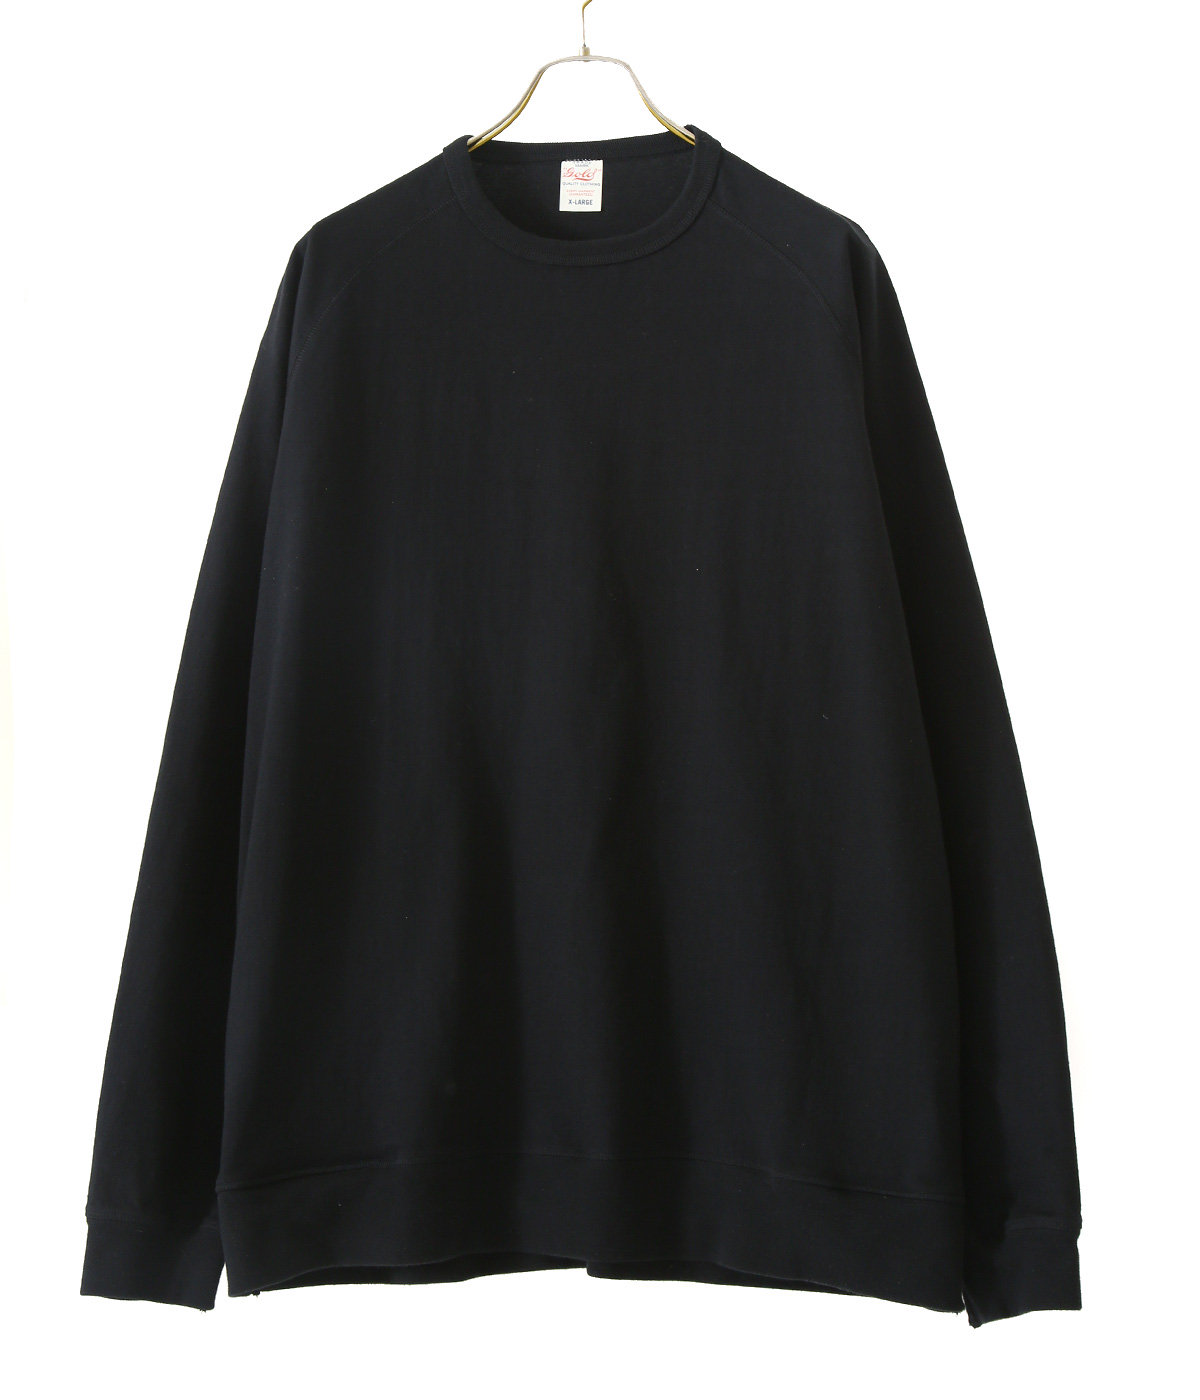 14/- HEAVY COTTON BIG SWEAT SHIRT